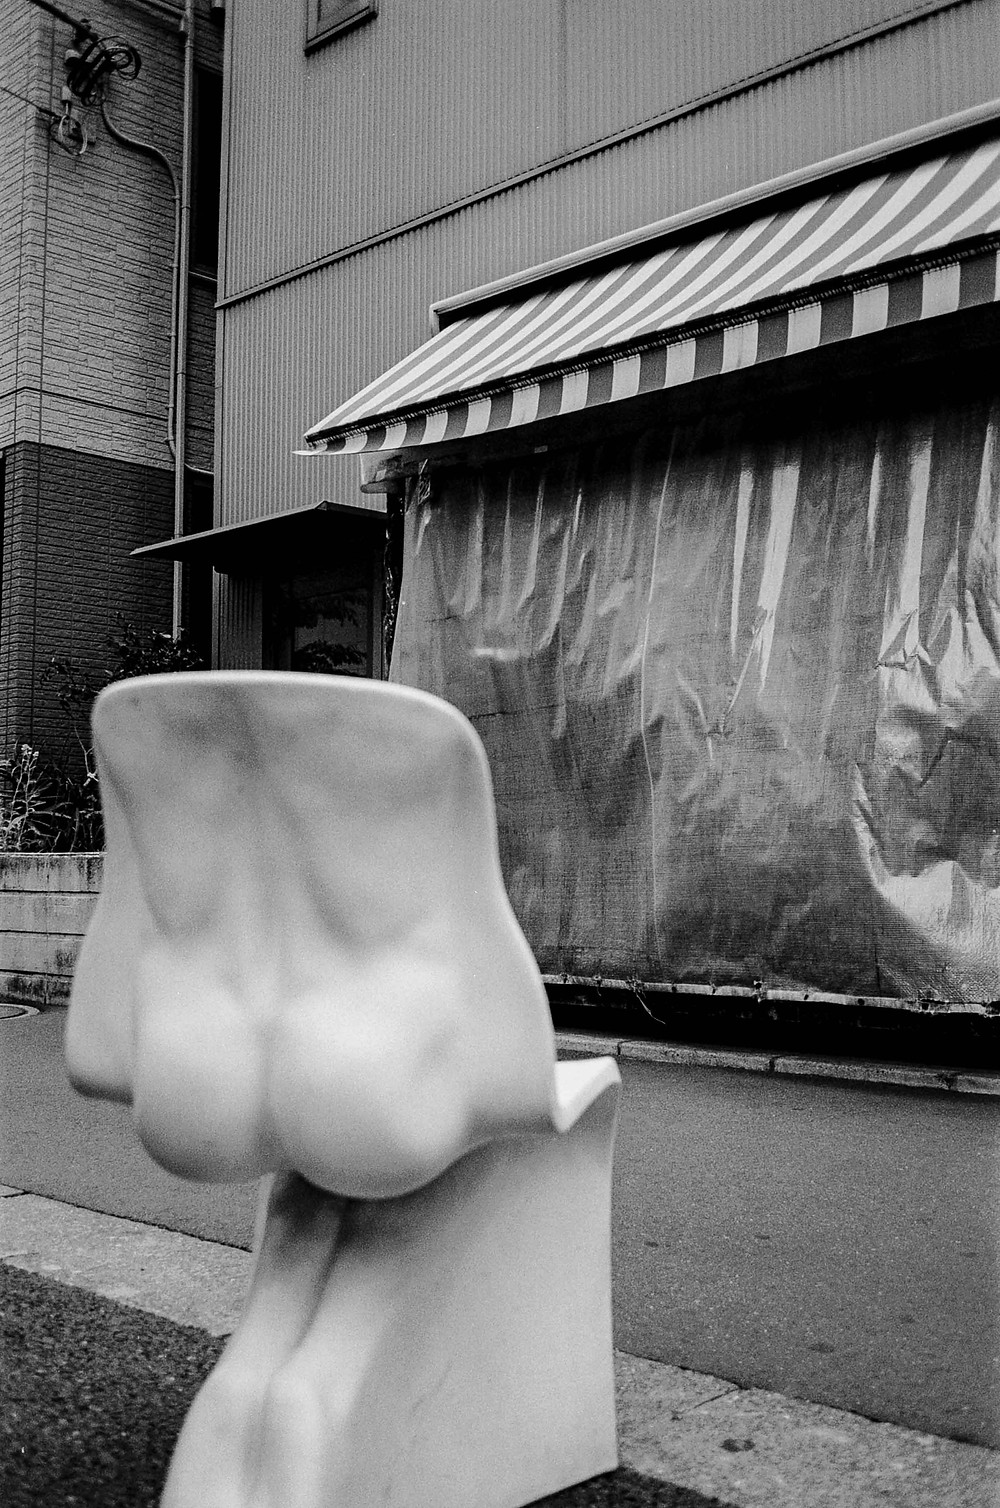 Black and white film photography: A chair with an imprint of a human bum on the sidewalk outside shop stall